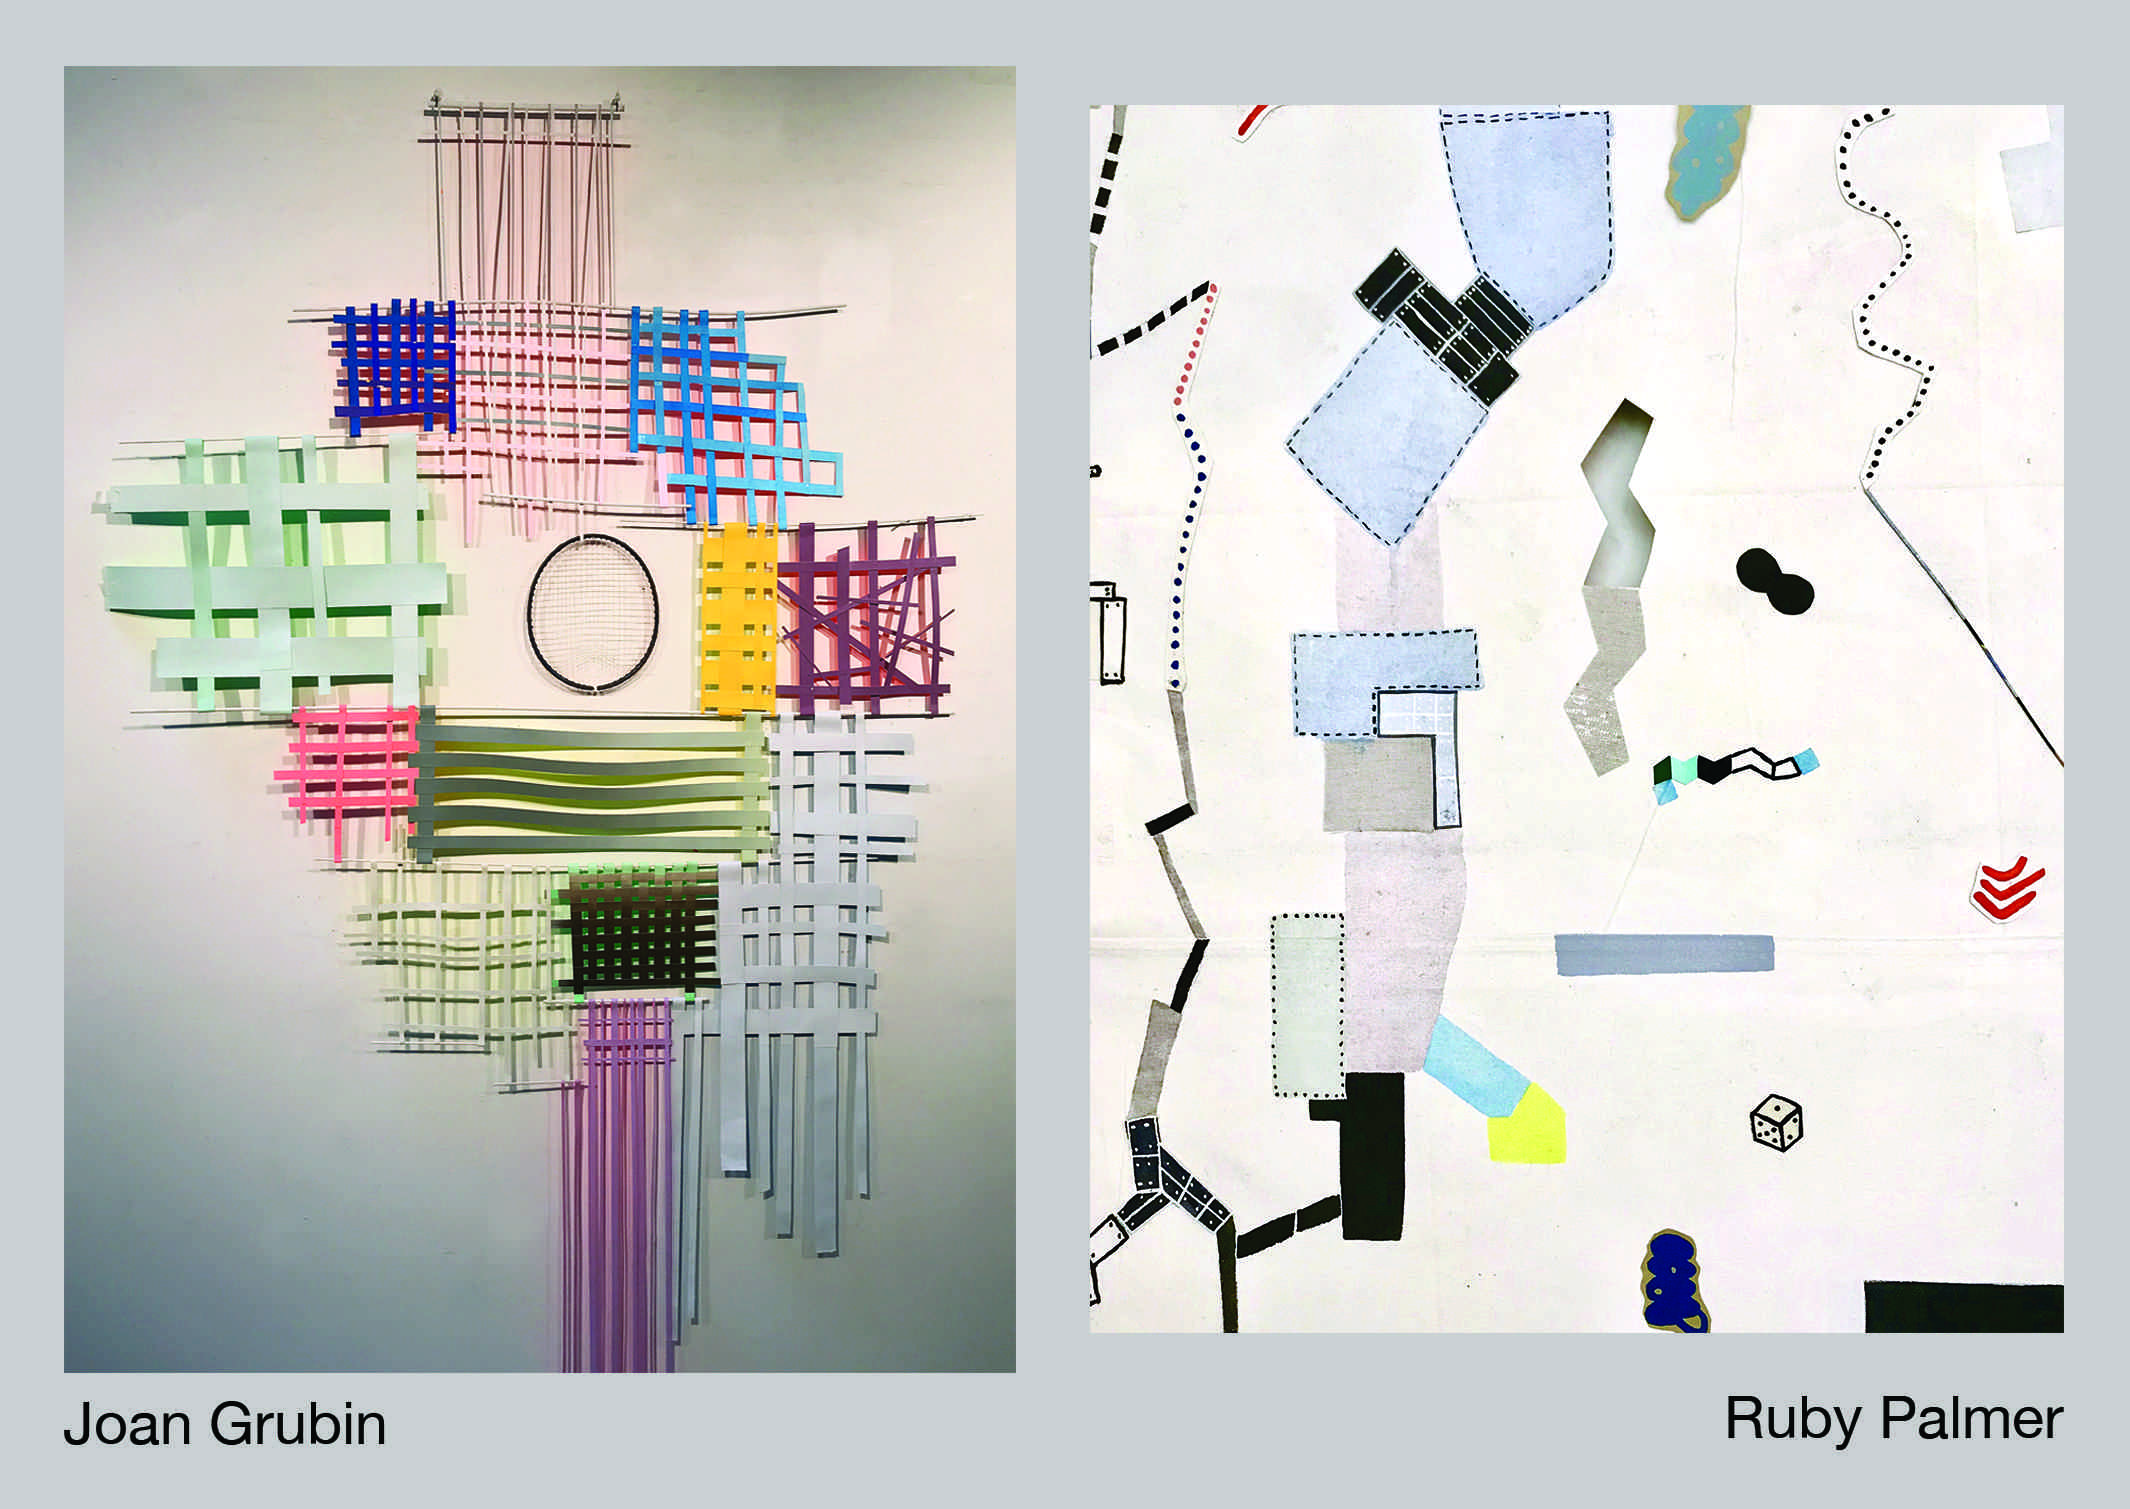 two pieces of artwork side-by-side by joan grubin and ruby palmer